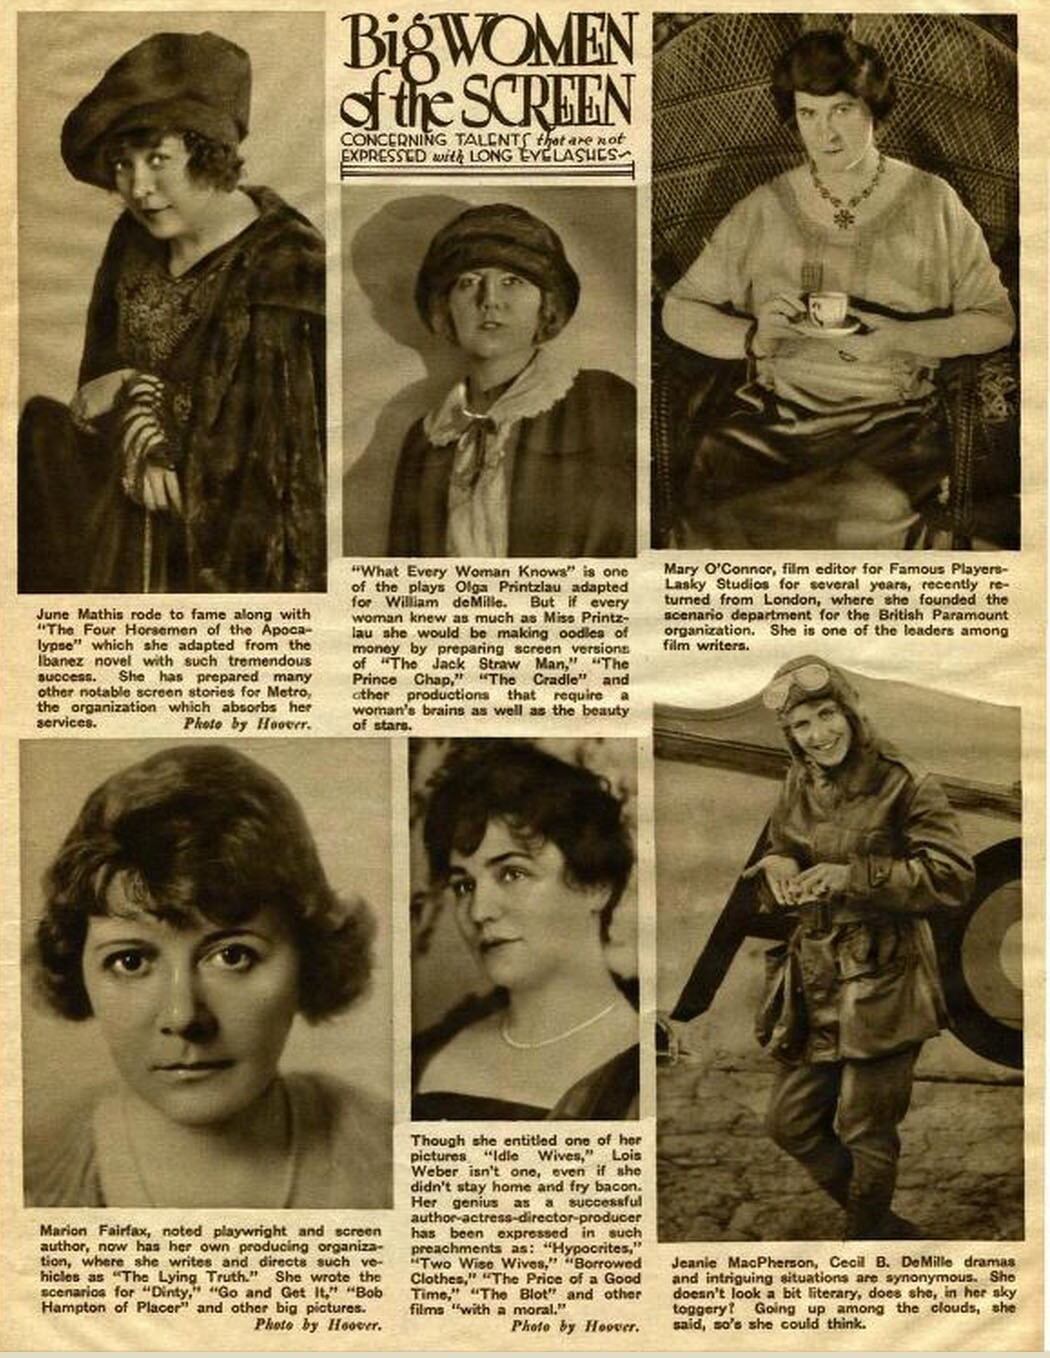 """Big Women of the Screen: Concerning Talents That Are Not Expressed With Long Eyelashes"" from the Jan. 1922 issue of Screenland"